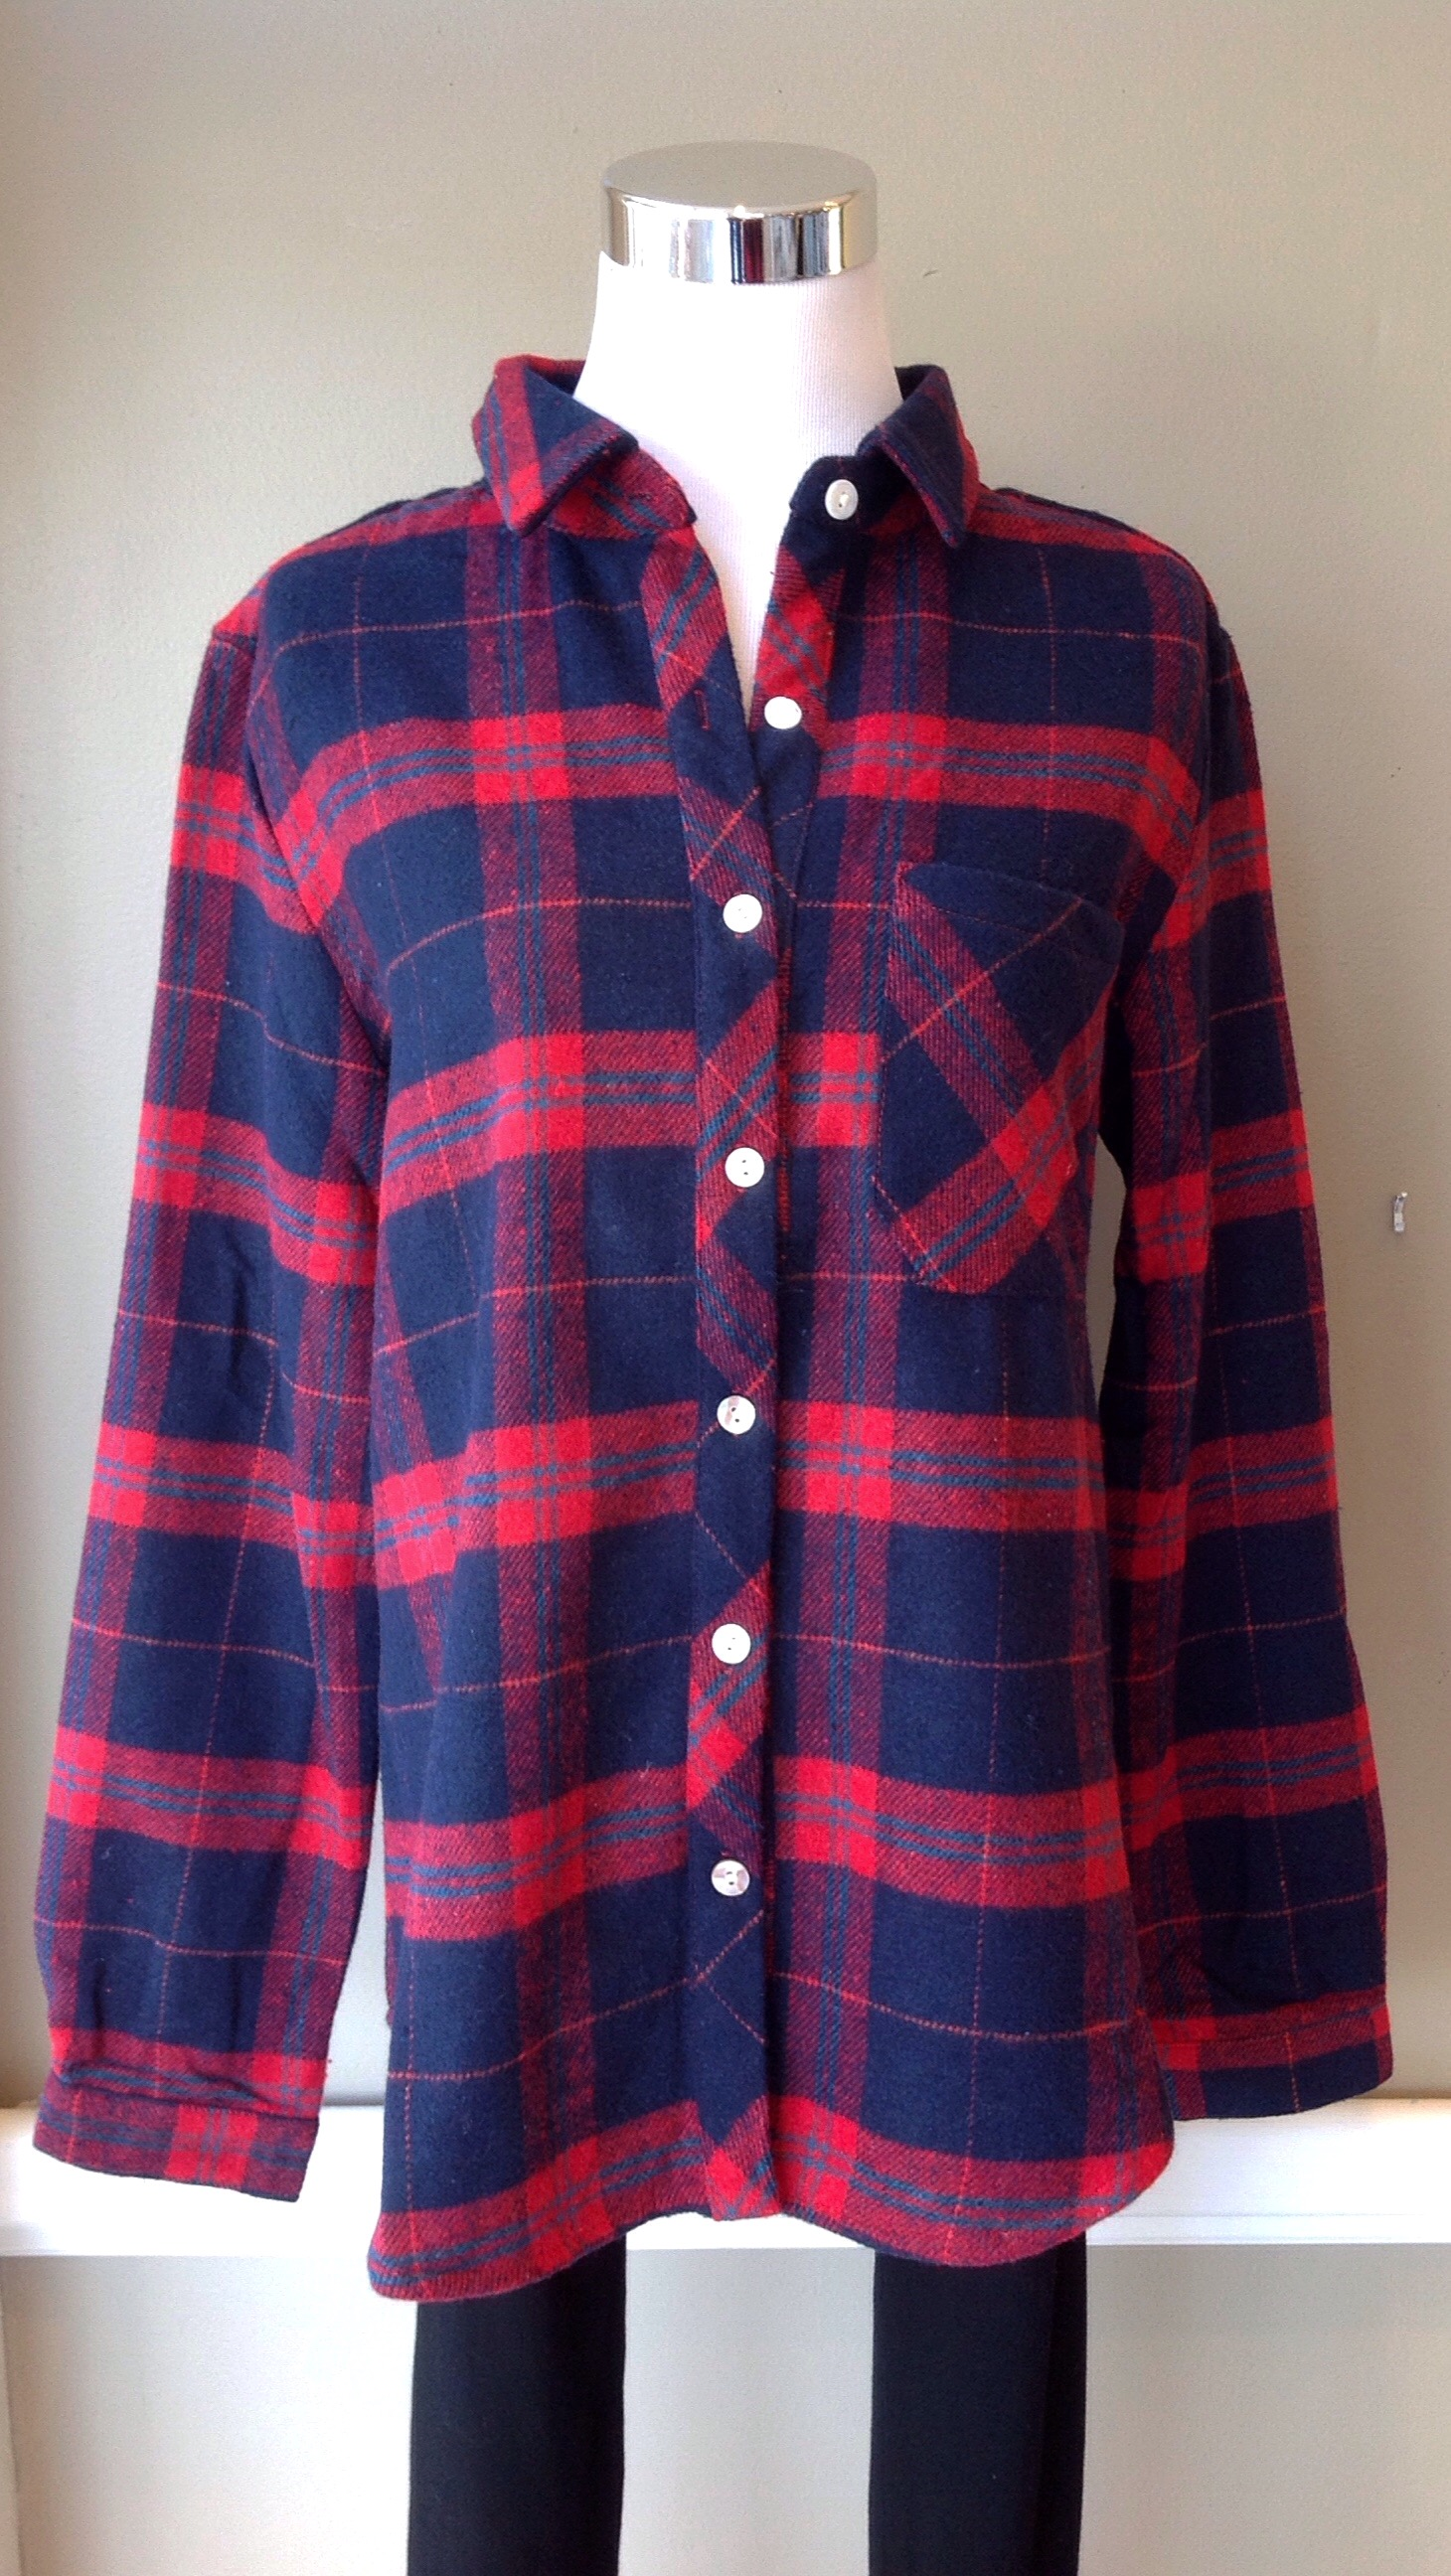 Flannel button-down in red/navy, $34